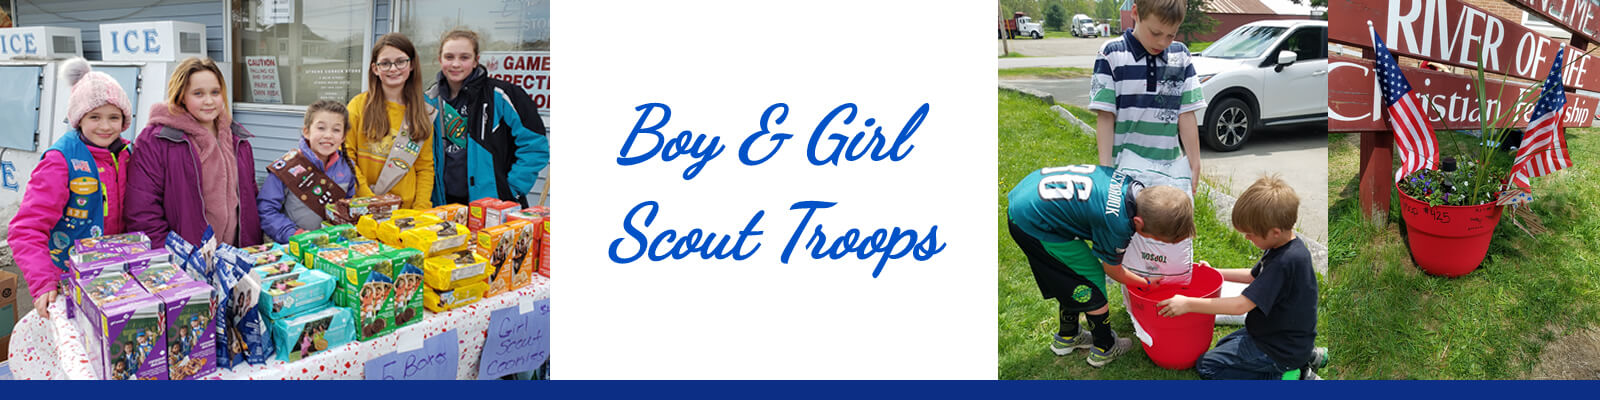 Boy & Girl Scout Troops, Athens, Maine.